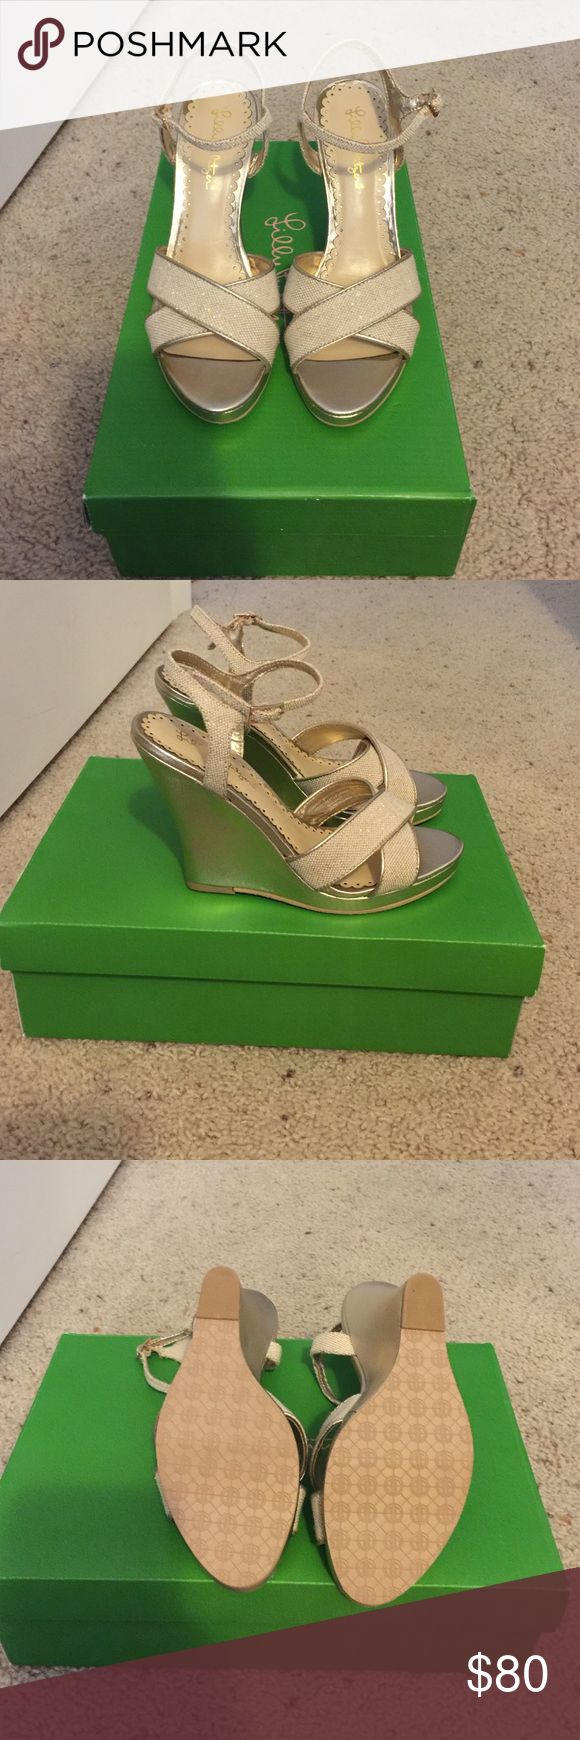 Lilly Pulitzer Abby Wedge New in Box Lilly Pulitzer Abby Wedge!!! Gorgeous gold Wedge with natural criss cross detail at the toe. Never been worn! Lilly Pulitzer Shoes Wedges